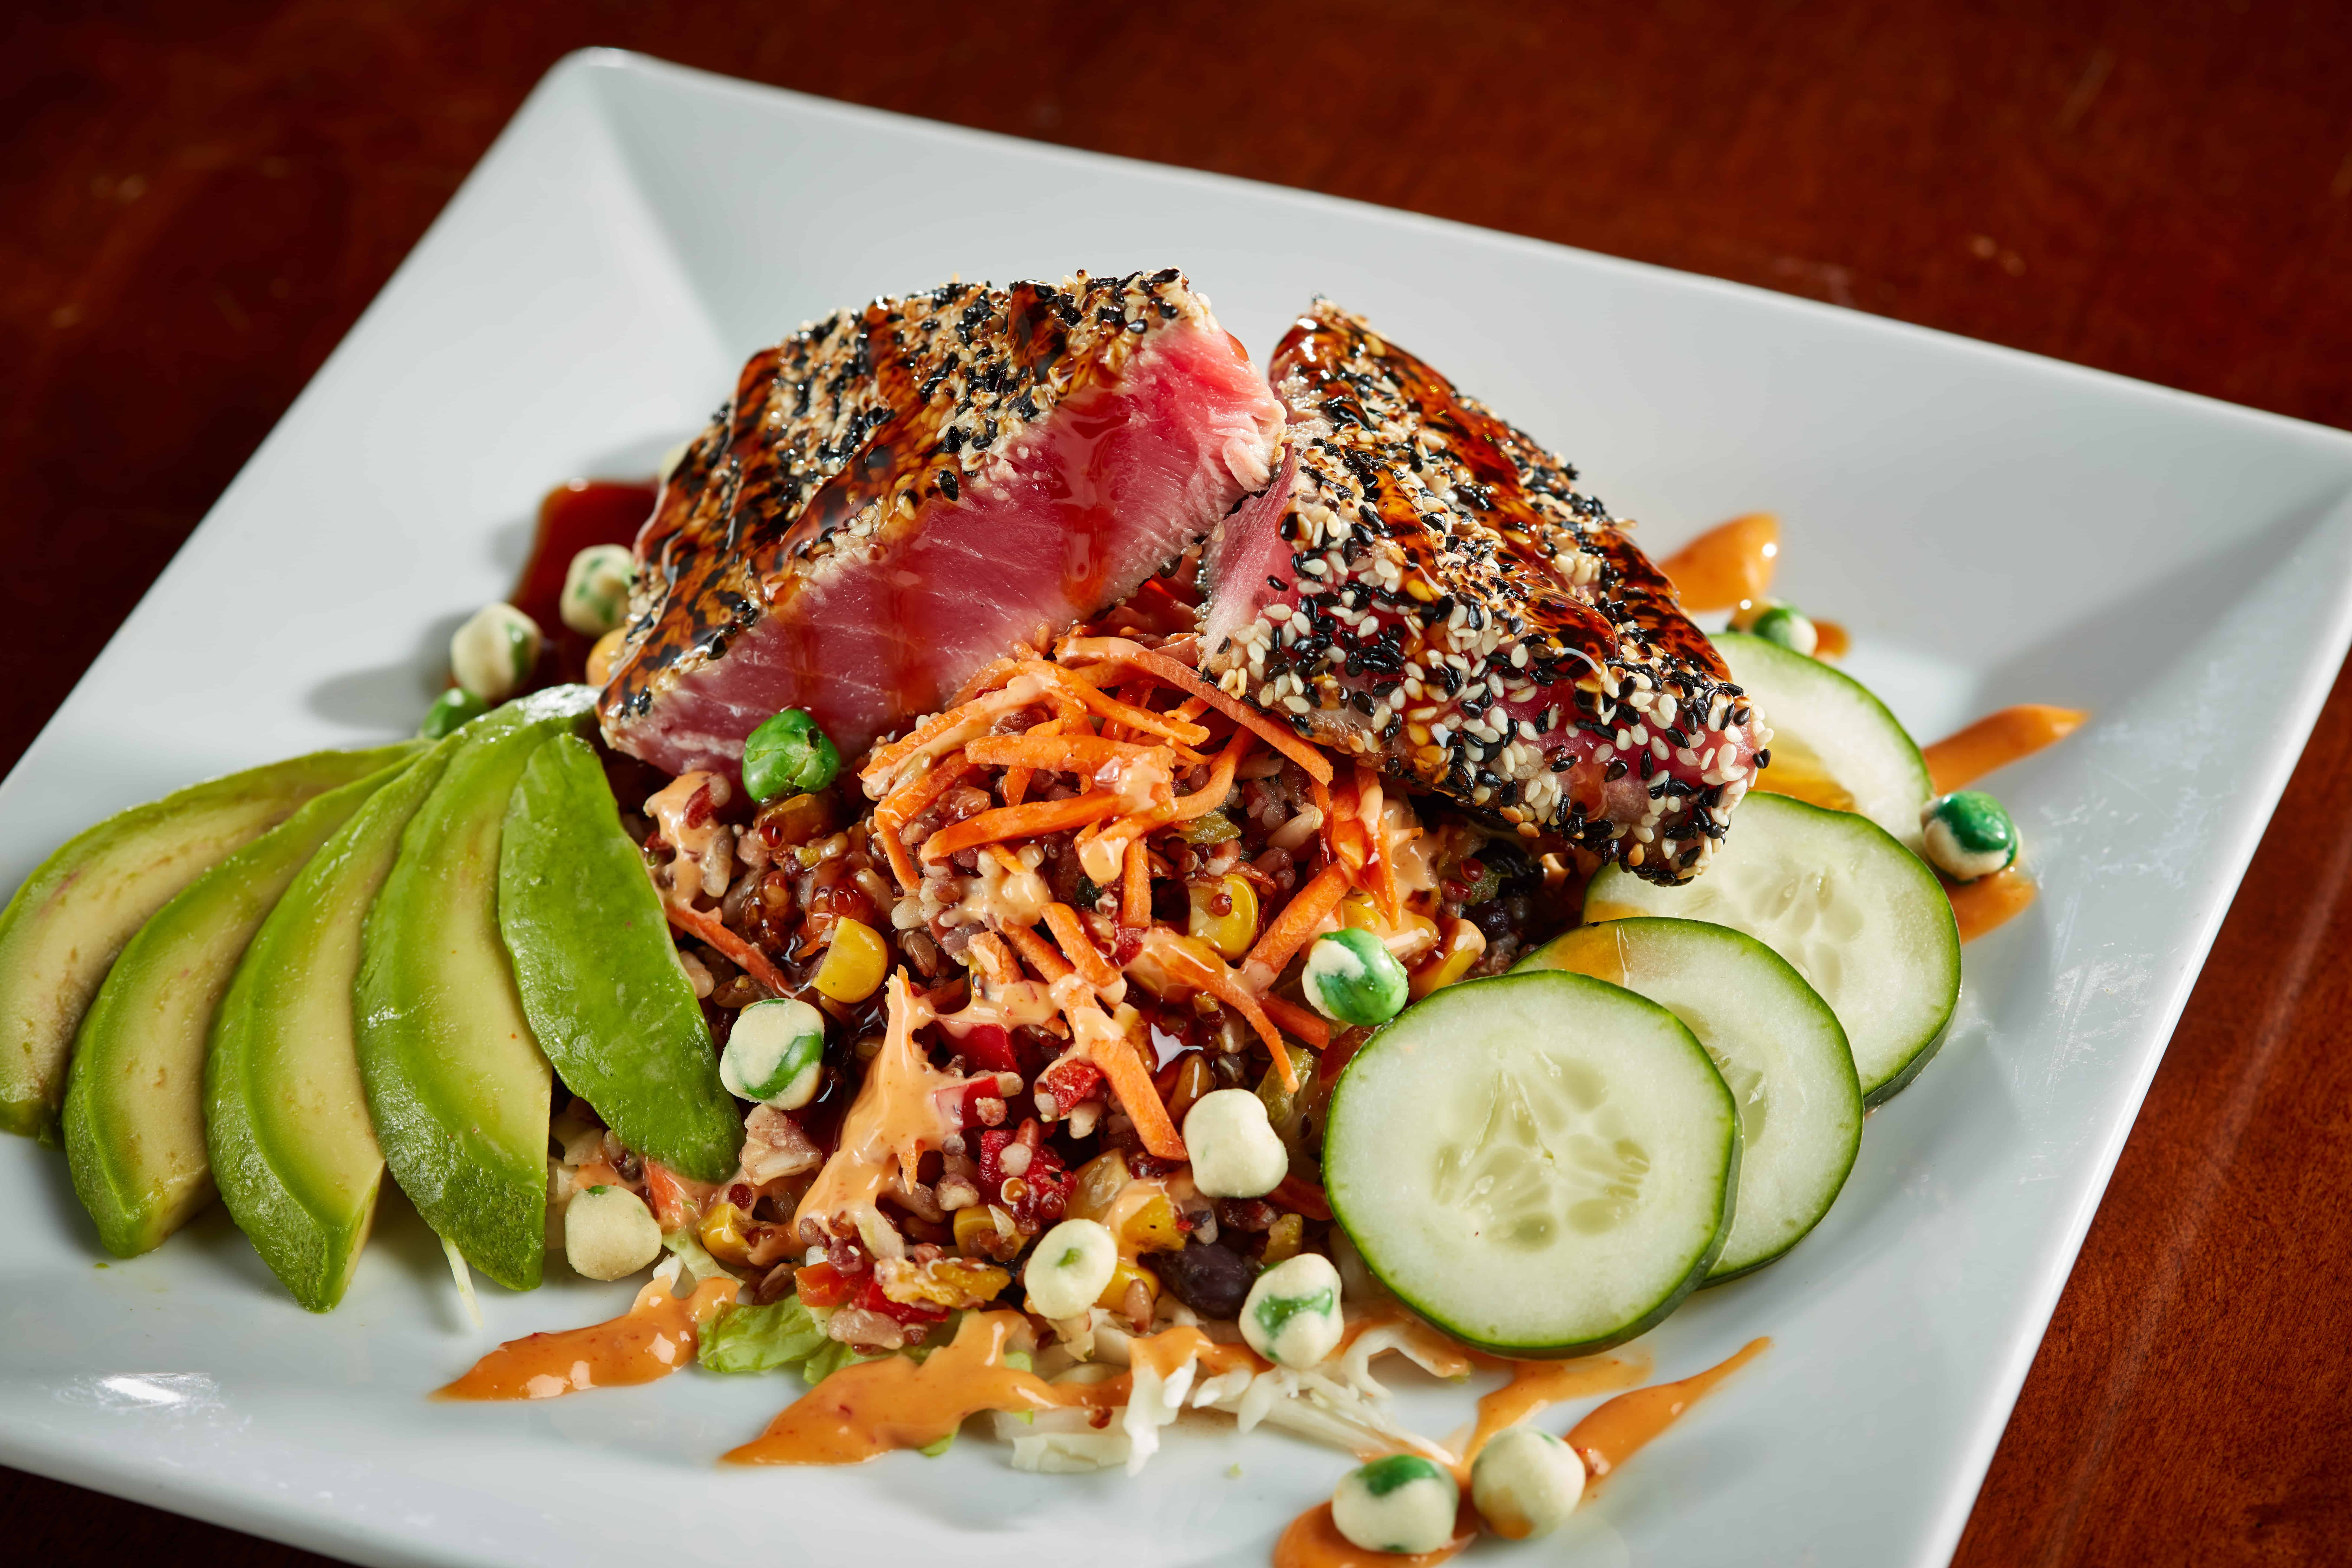 Ahi Tuna Bowl Bonus 6 - Sesame Crusted Ahi Tuna Salad